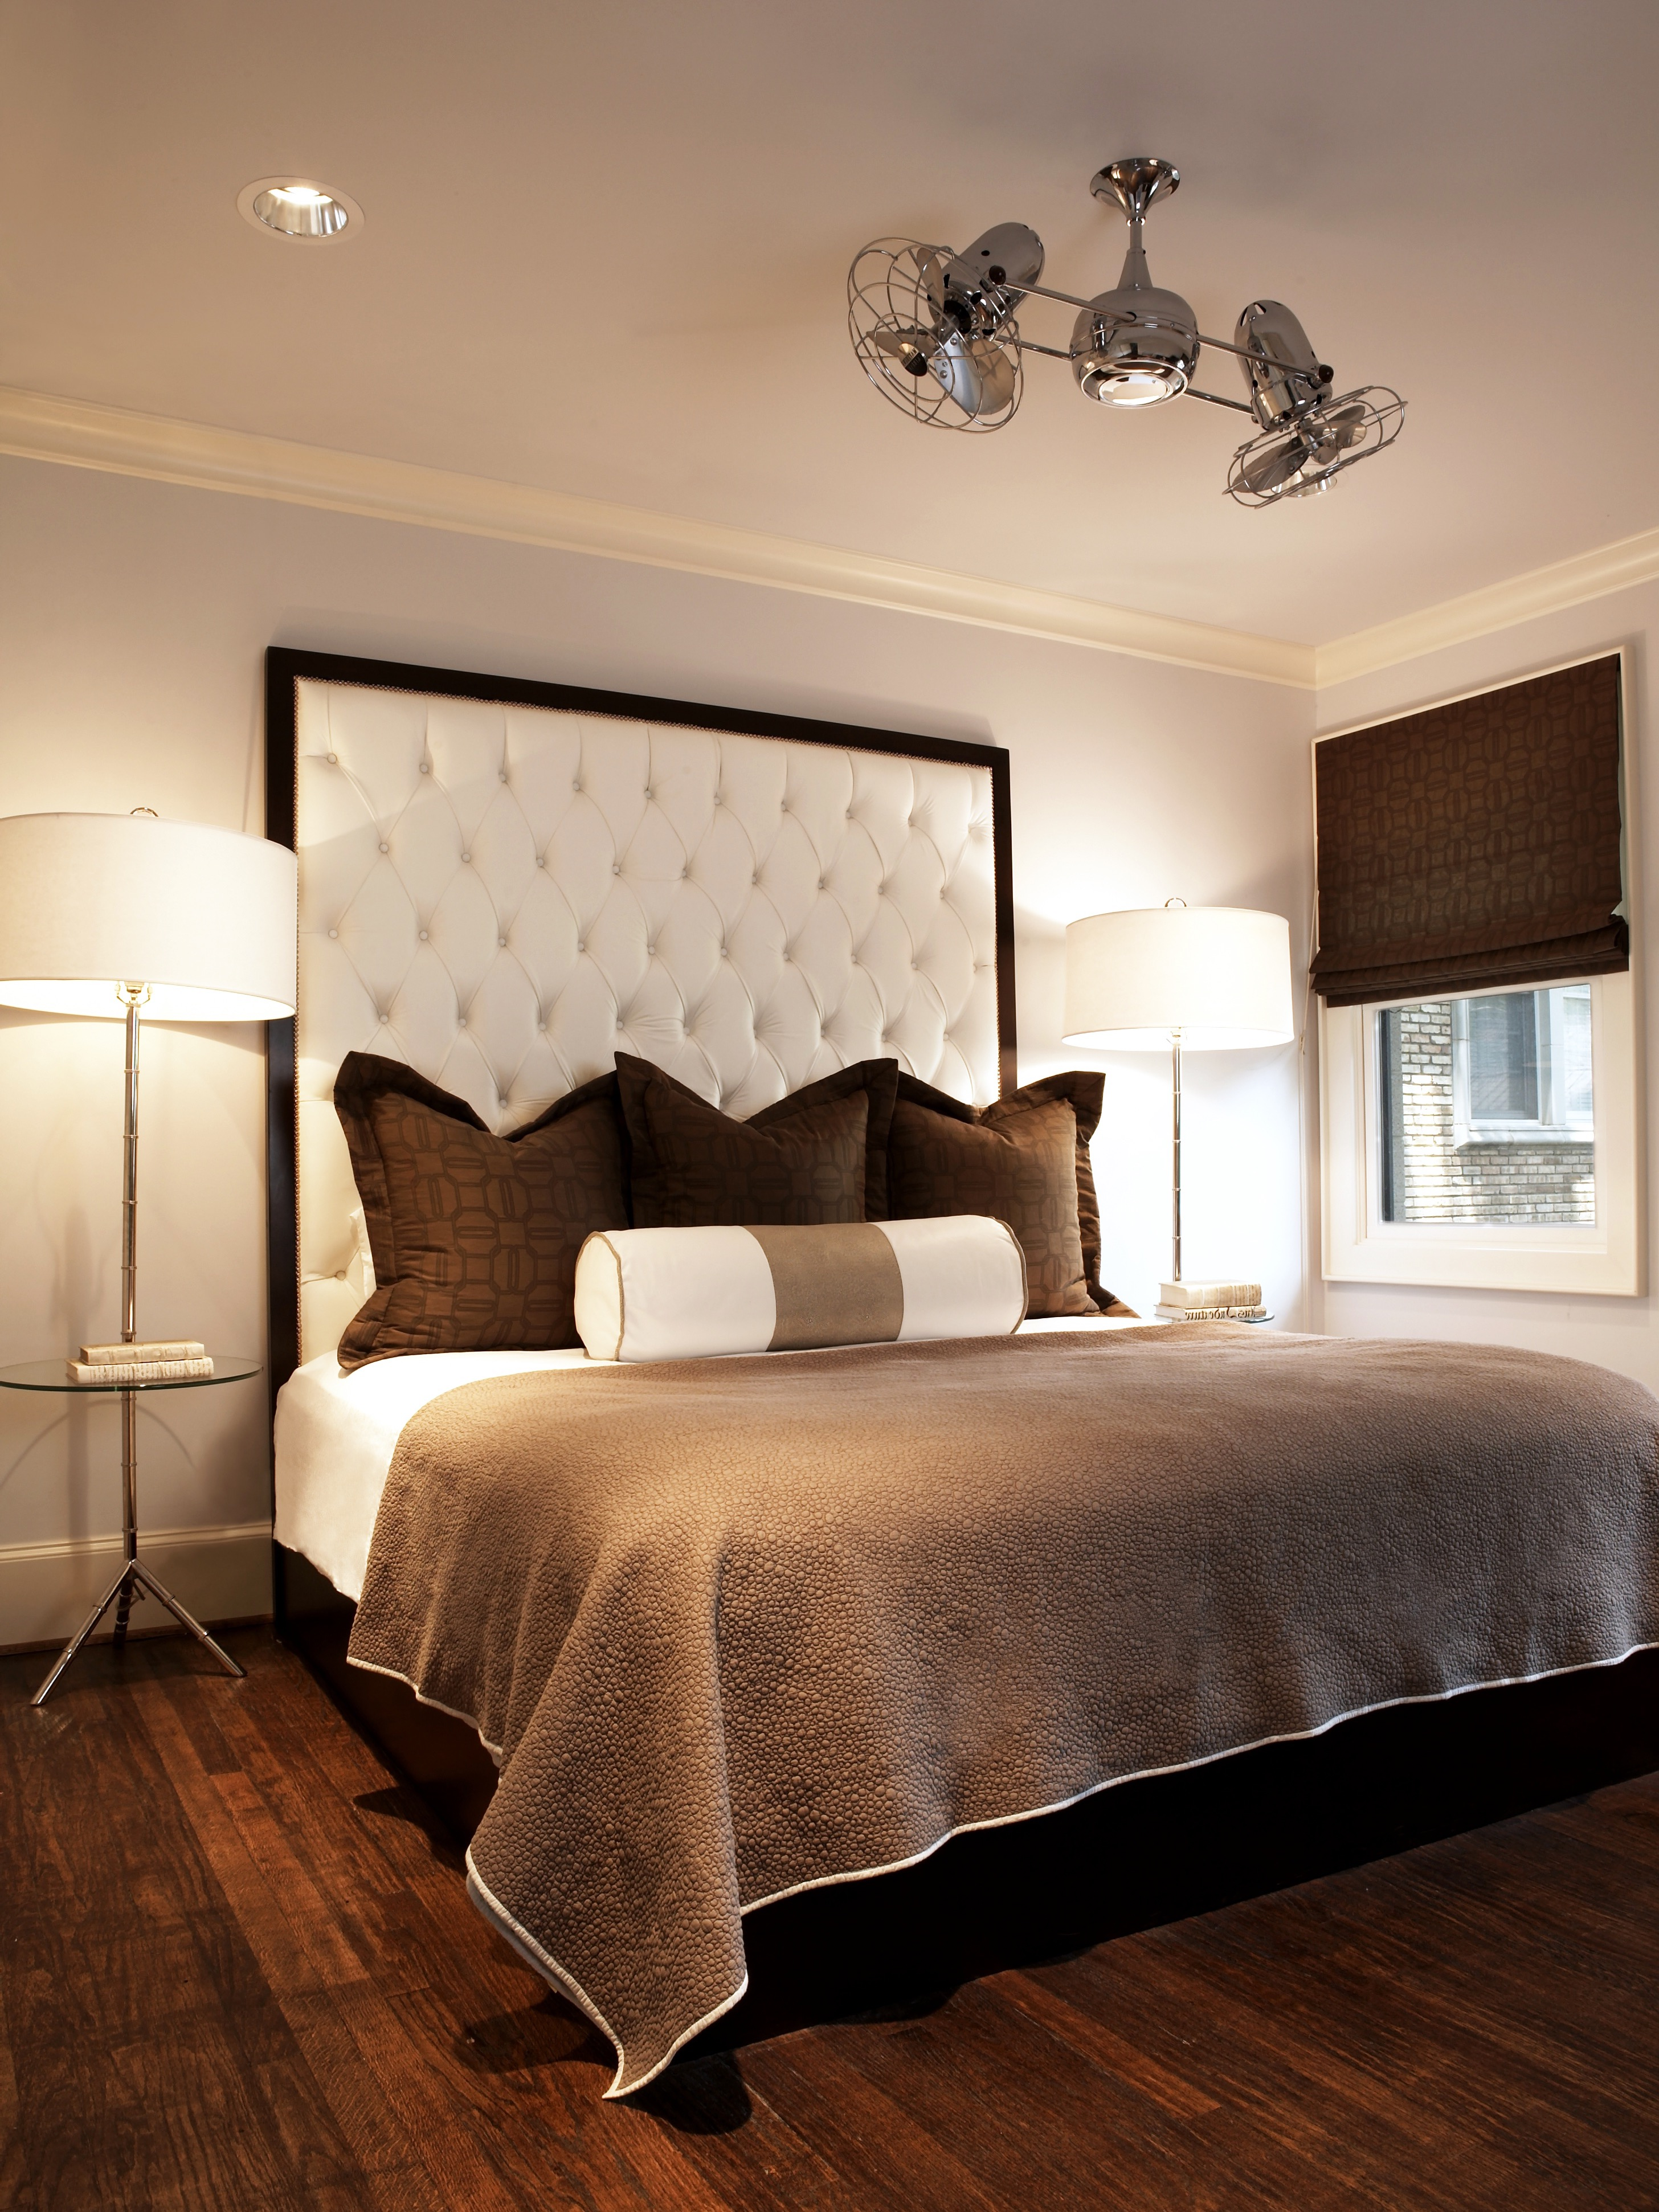 25 Hotel Inspired Bedroom Ideas For Luxurious Nuance 18960 Bedroom Ideas